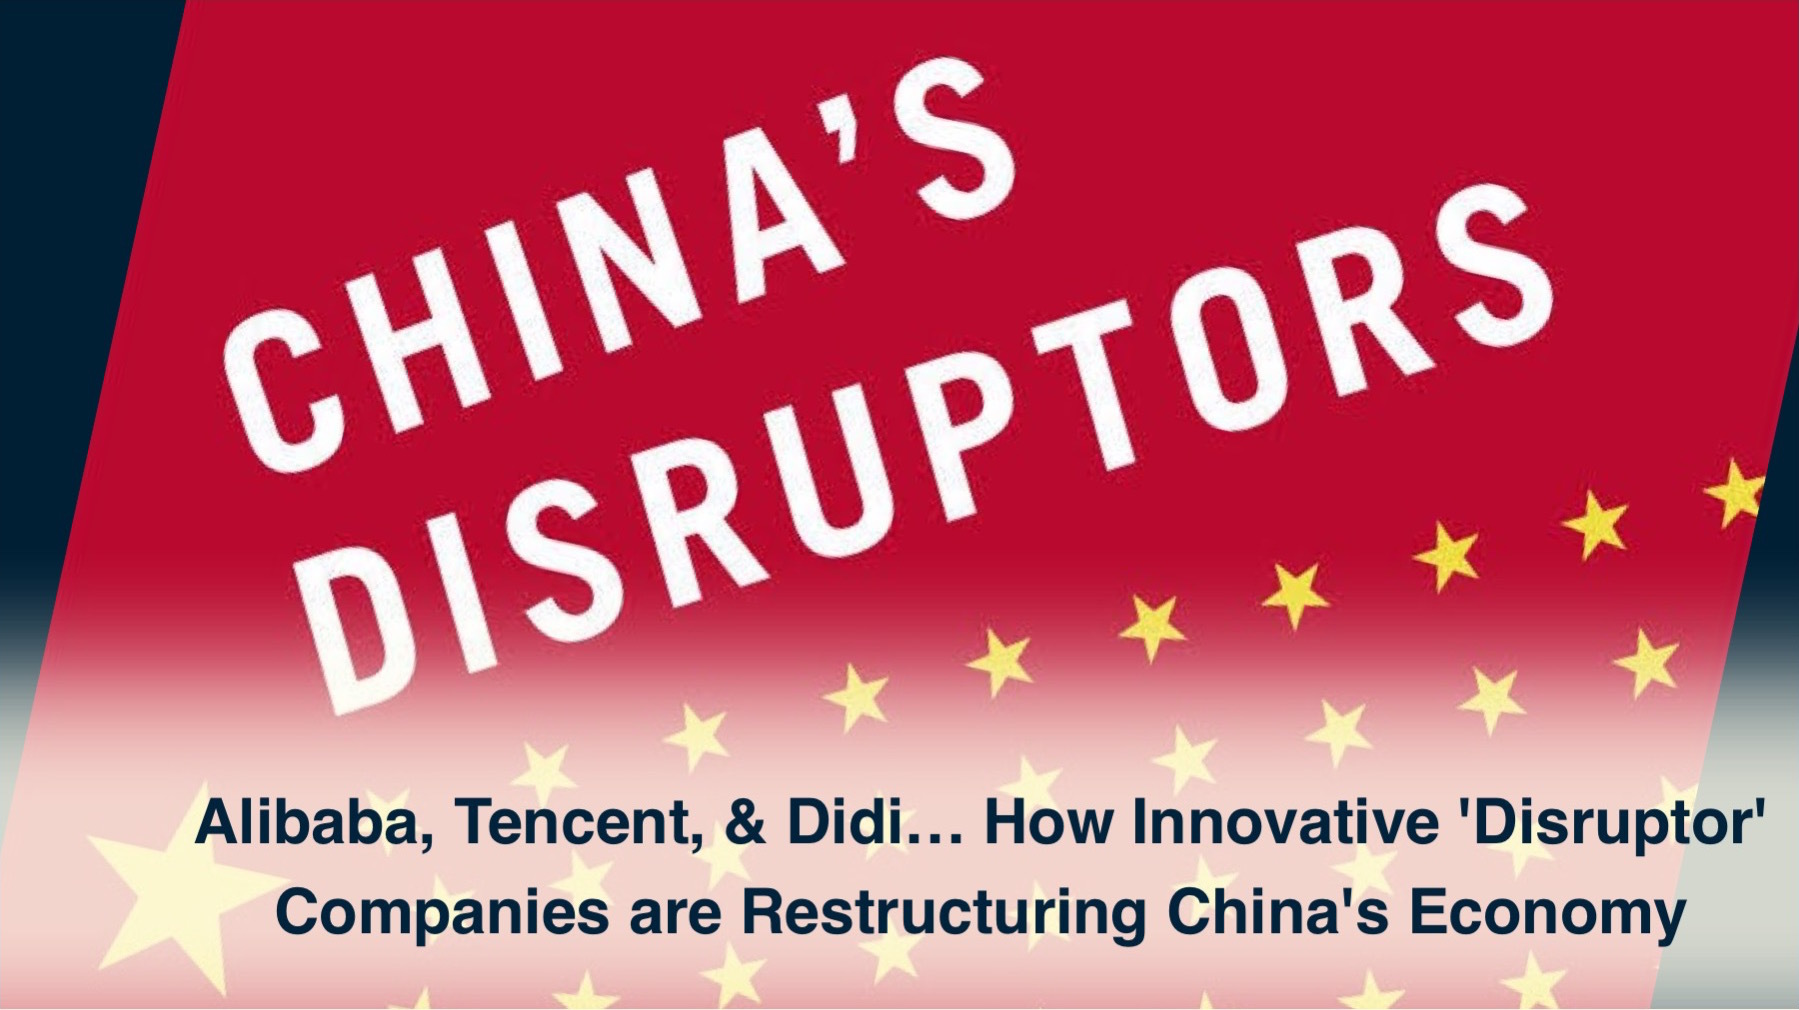 'China's Disruptors': How Alibaba, Xiaomi, & Tencent are Changing the Rules of Business